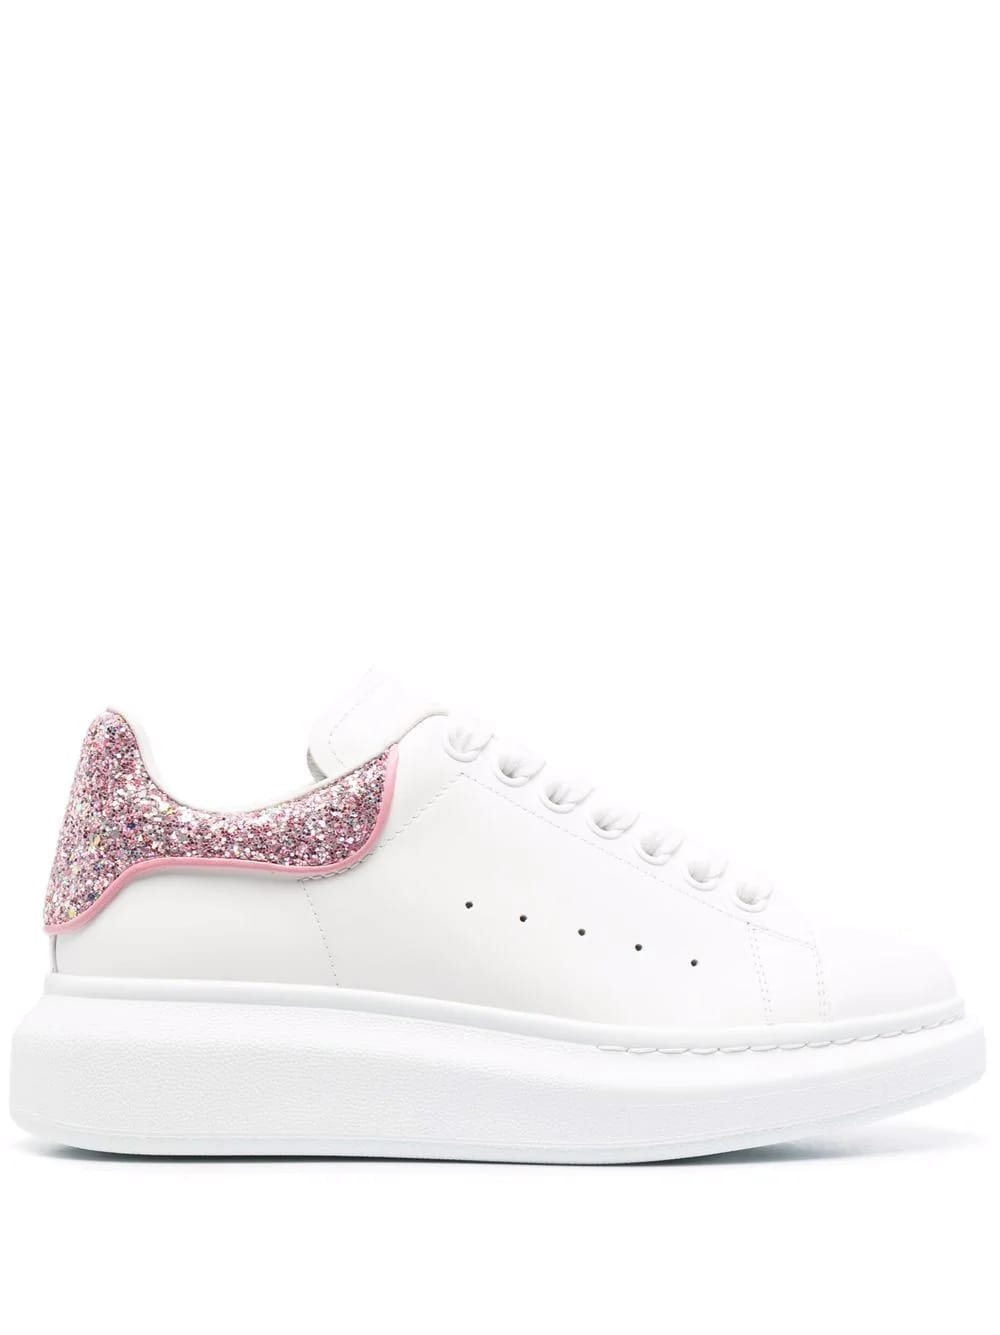 Alexander McQueen Woman White Oversize Sneakers With Fuchsia Glittered Spoiler